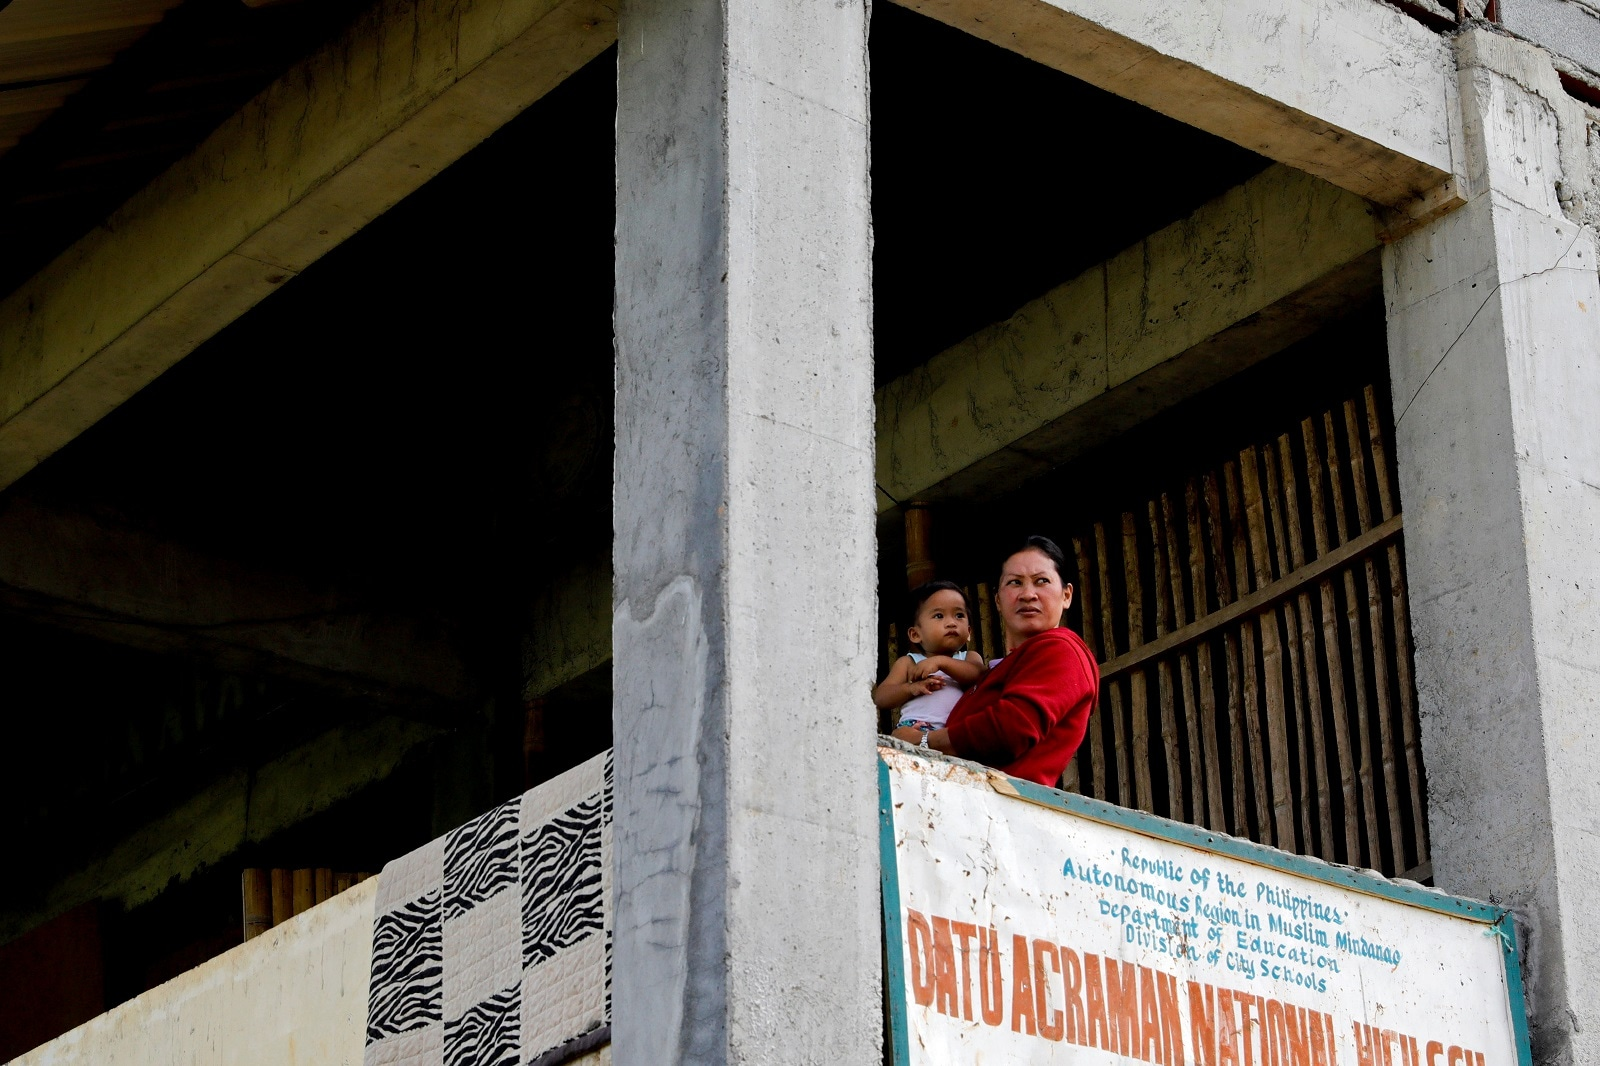 Marie Dalama Acampong, 37, carries her one-year-old daughter Norlaila at the school-turned-evacuation center in Mipaga, Marawi City, Lanao del Sur province, Philippines, May 12, 2019. REUTERS/Eloisa Lopez